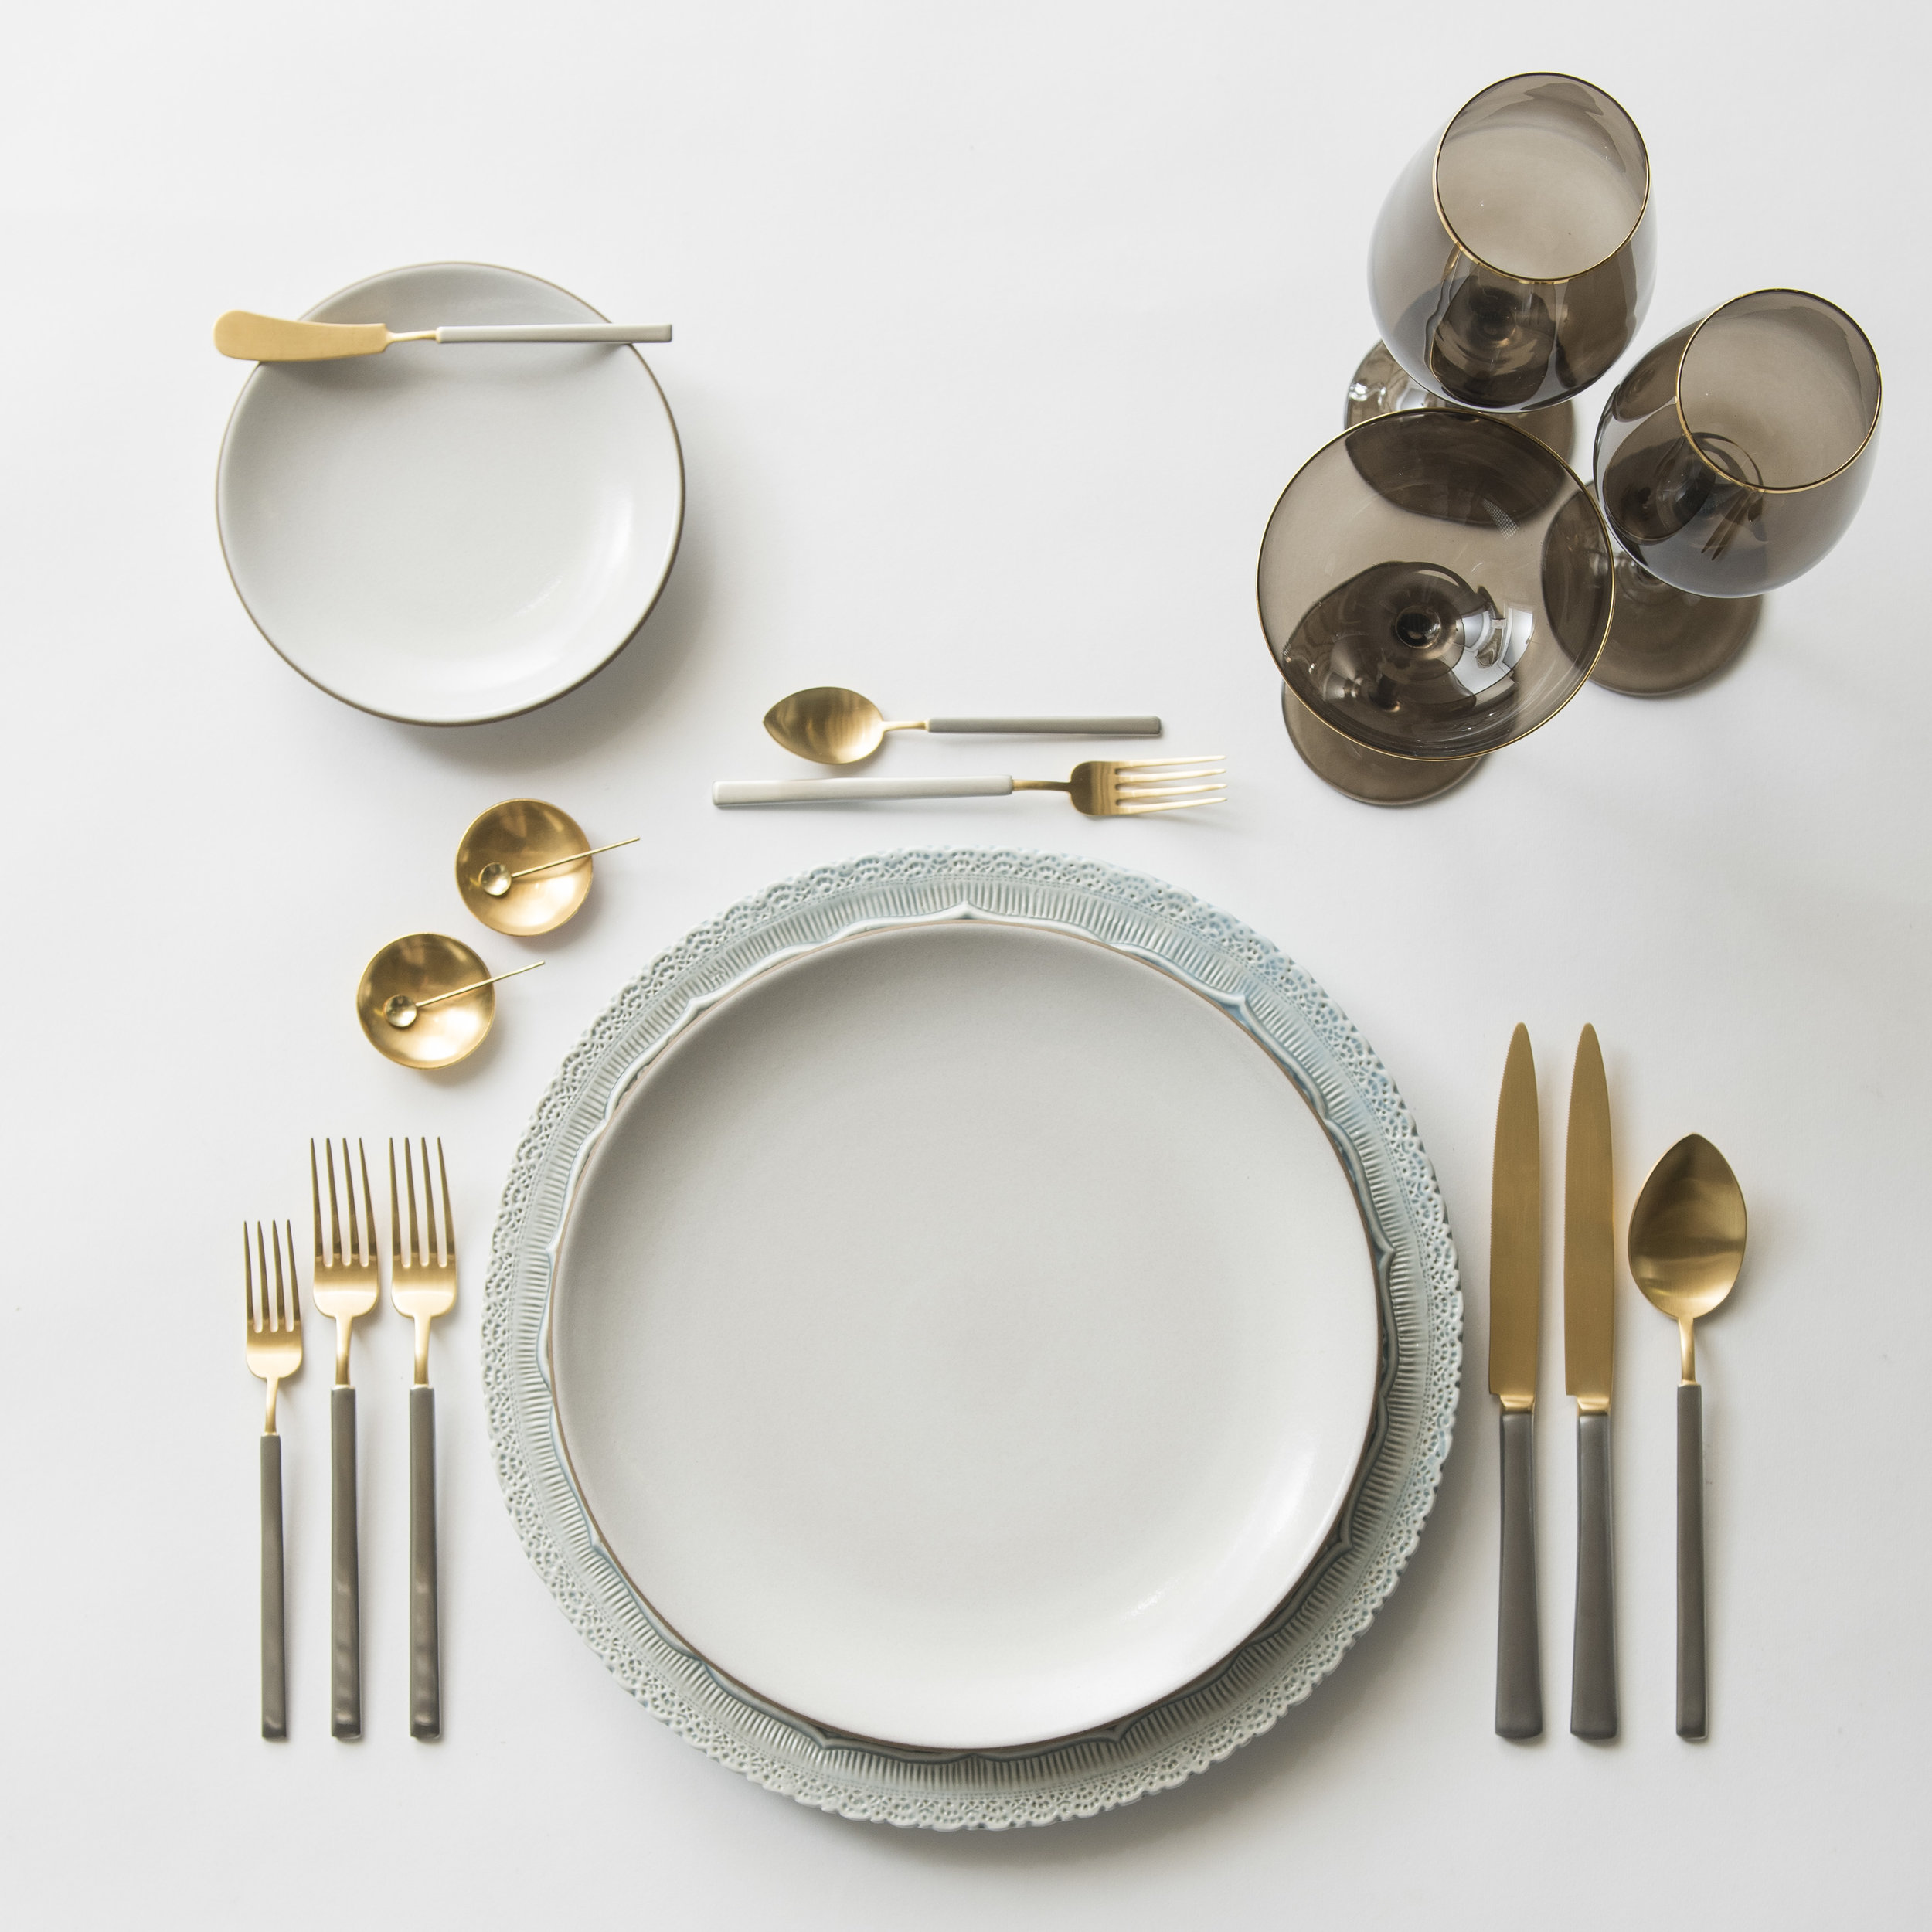 RENT: Lace Chargers in Dusty Blue + Heath Ceramics in Opaque White + Axel Flatware in Matte 24k Gold/Silver + Bella 24k Gold Rimmed Stemware in Smoke + 14k Gold Salt Cellars + Tiny Gold Spoons  SHOP:Bella 24k Gold Rimmed Stemware in Smoke + 14k Gold Salt Cellars + Tiny Gold Spoons